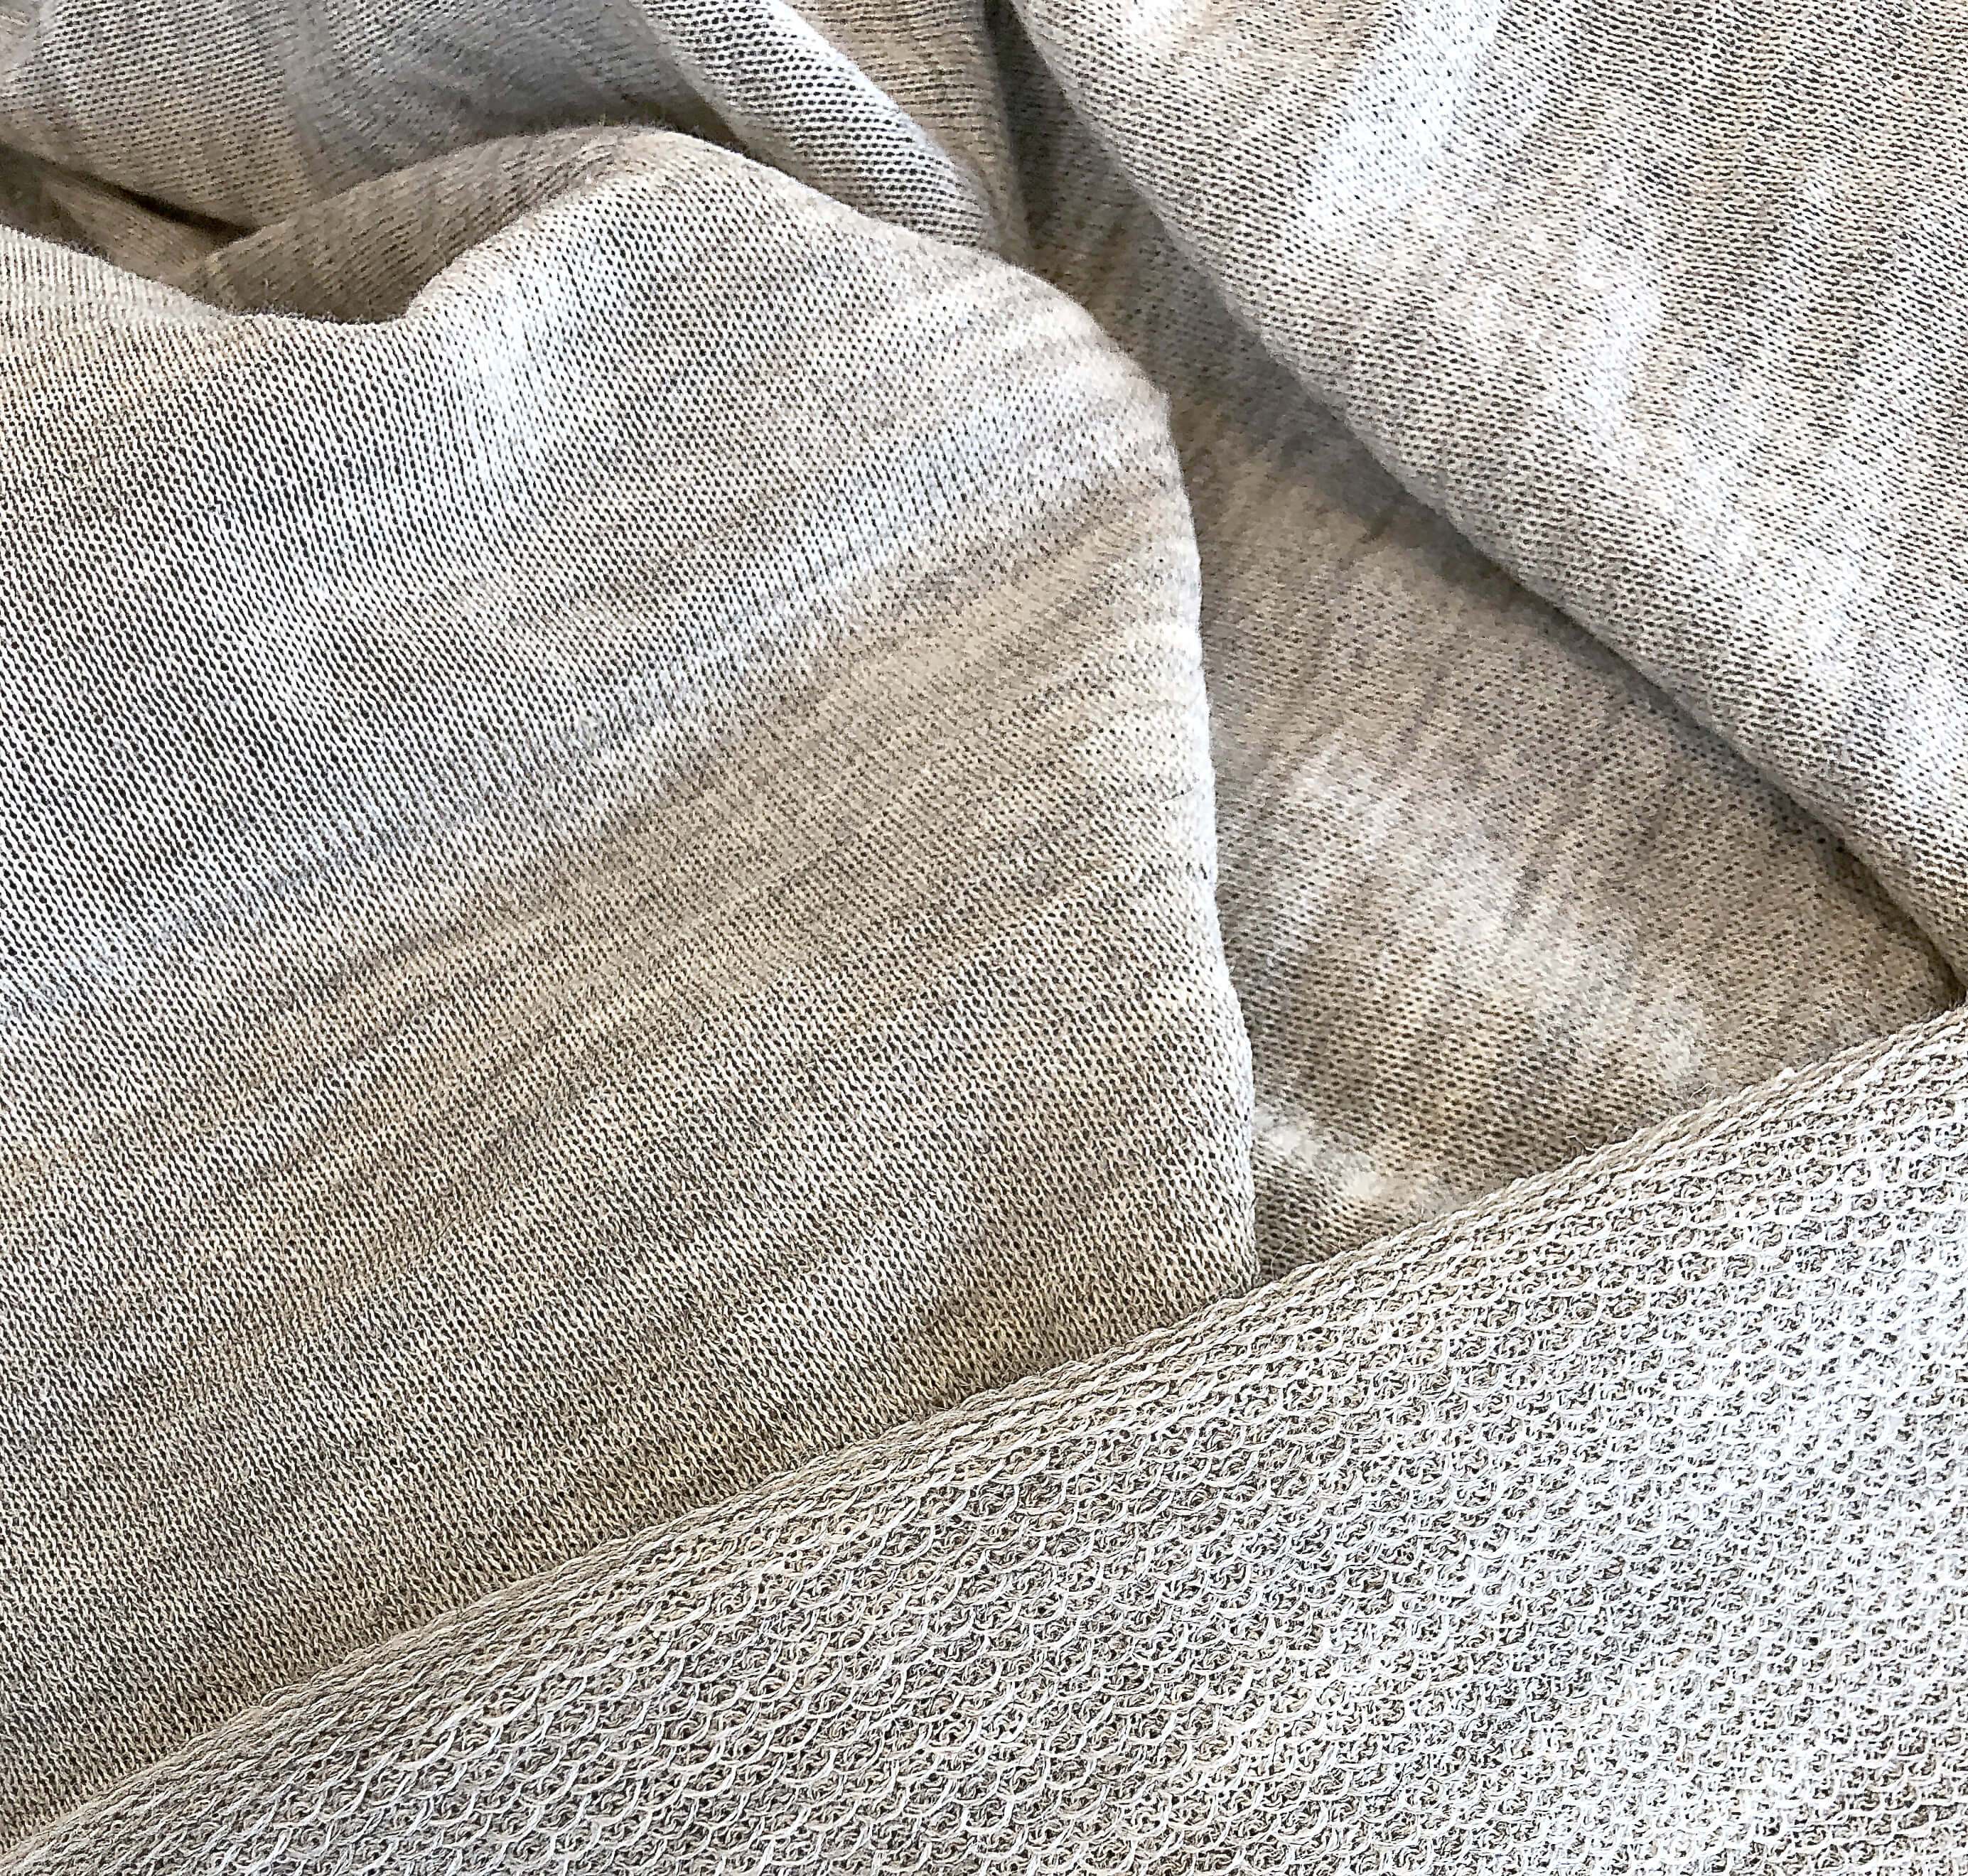 Close up of pieces of woollen jersey fabric from the outside and the inside which demonstrates an intricate loop pattern